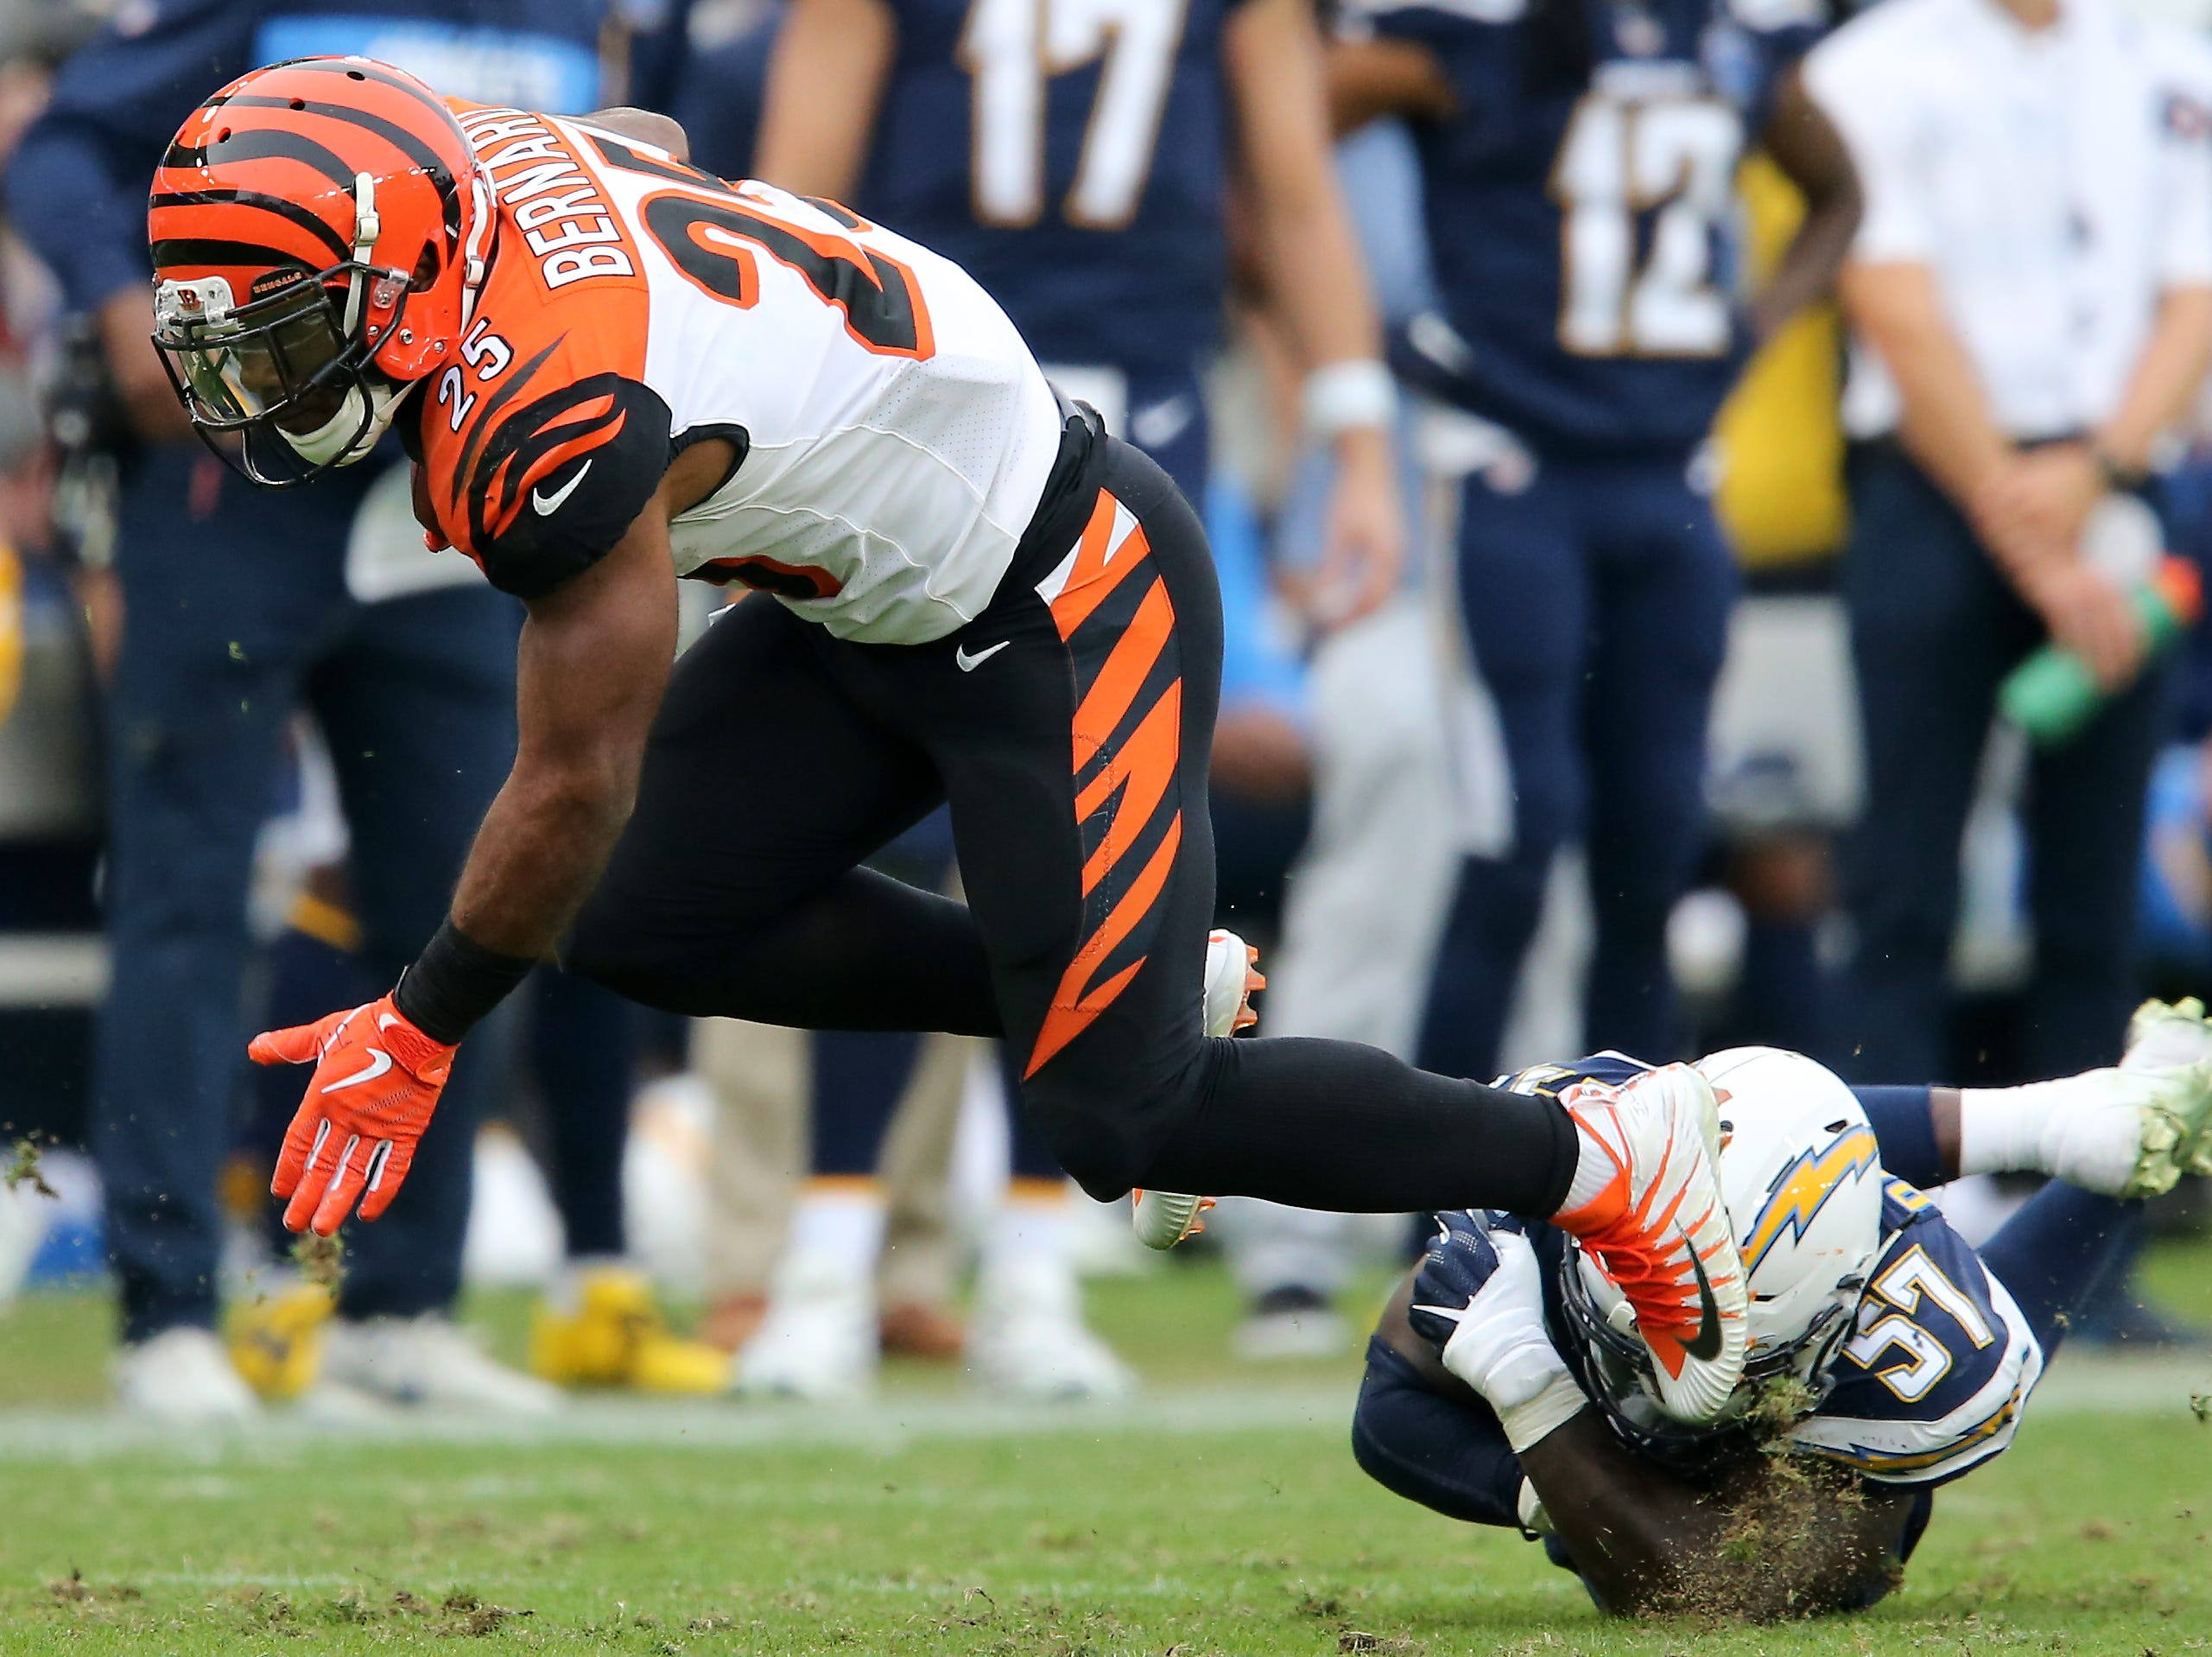 Cincinnati Bengals running back Giovani Bernard (25) is tackled by Los Angeles Chargers outside linebacker Jatavis Brown (57) in the fourth quarter of a Week 14 NFL football game, Sunday, Dec. 9, 2018, at StubHub Center in Carson, California.